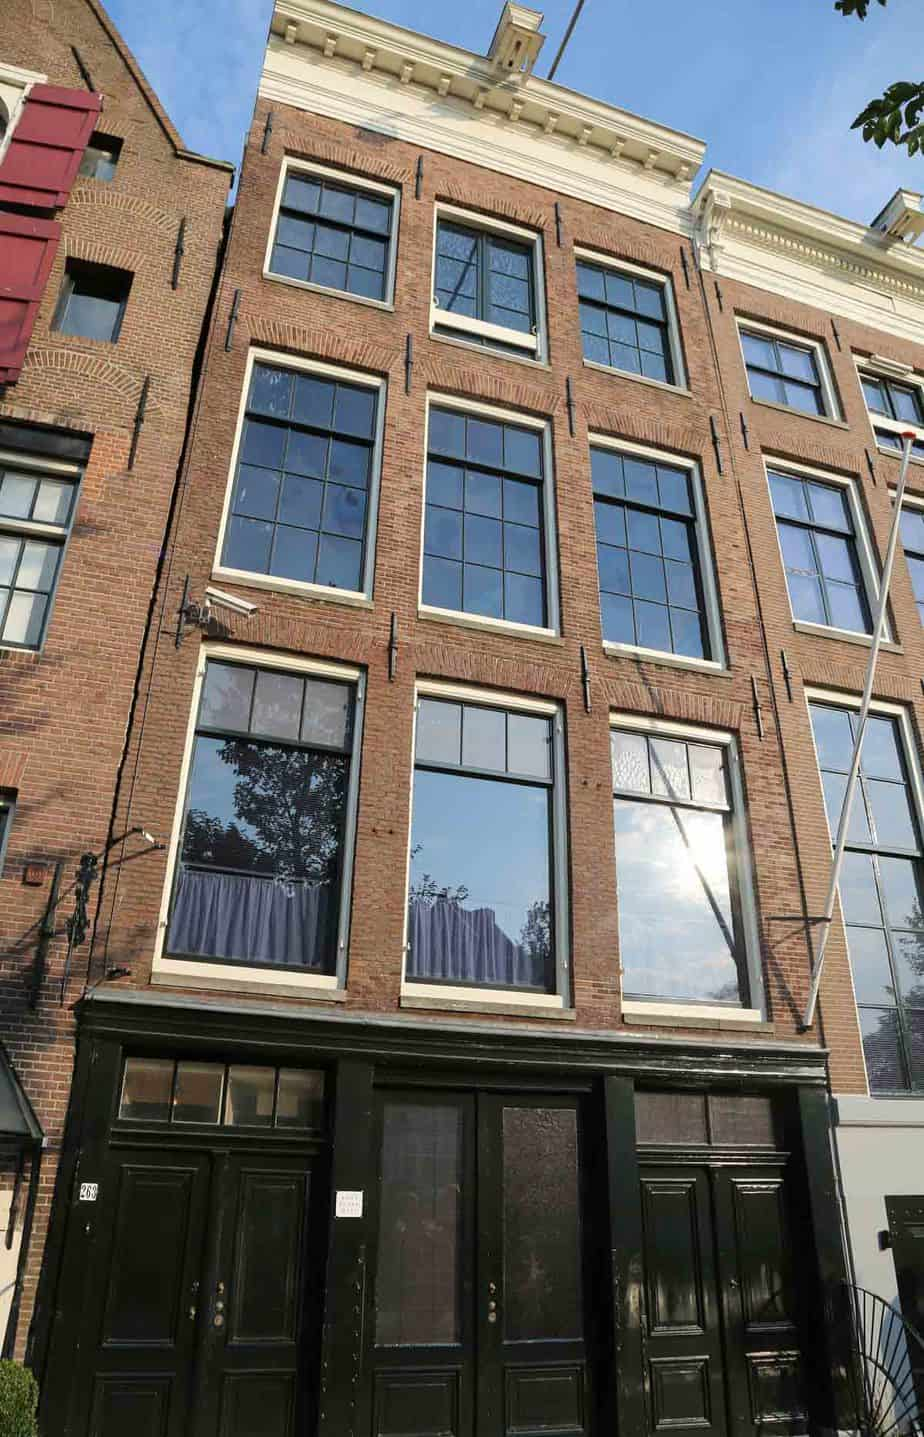 most visited tourist attractions in europe anne frank house amsterdam netherlands